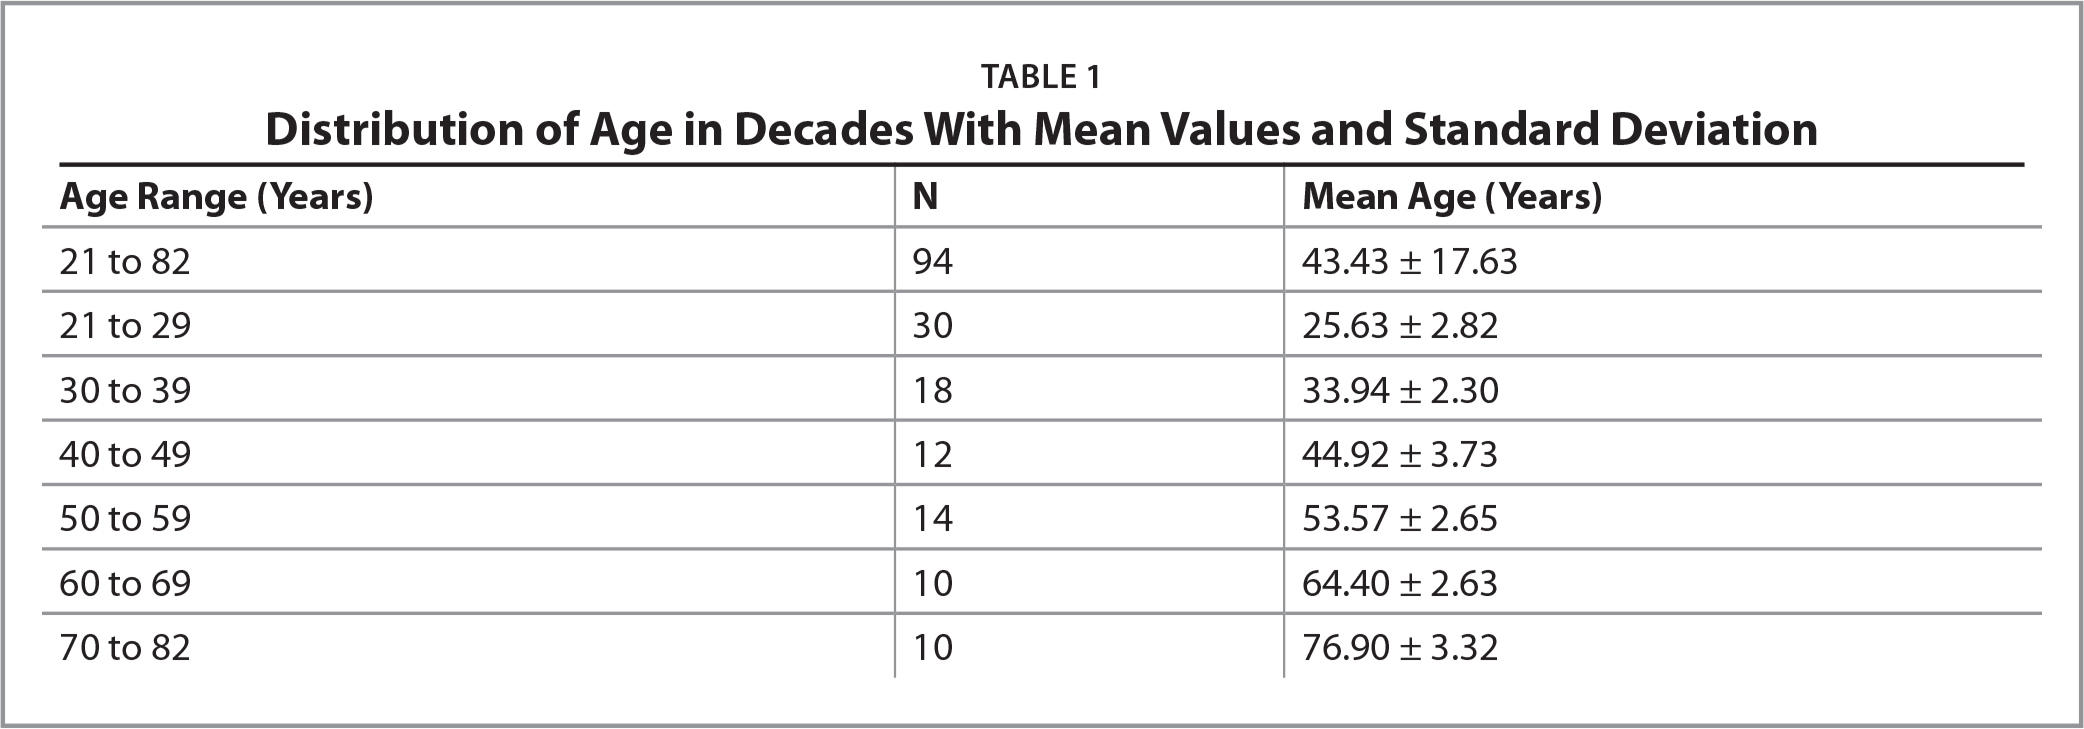 Distribution of Age in Decades With Mean Values and Standard Deviation